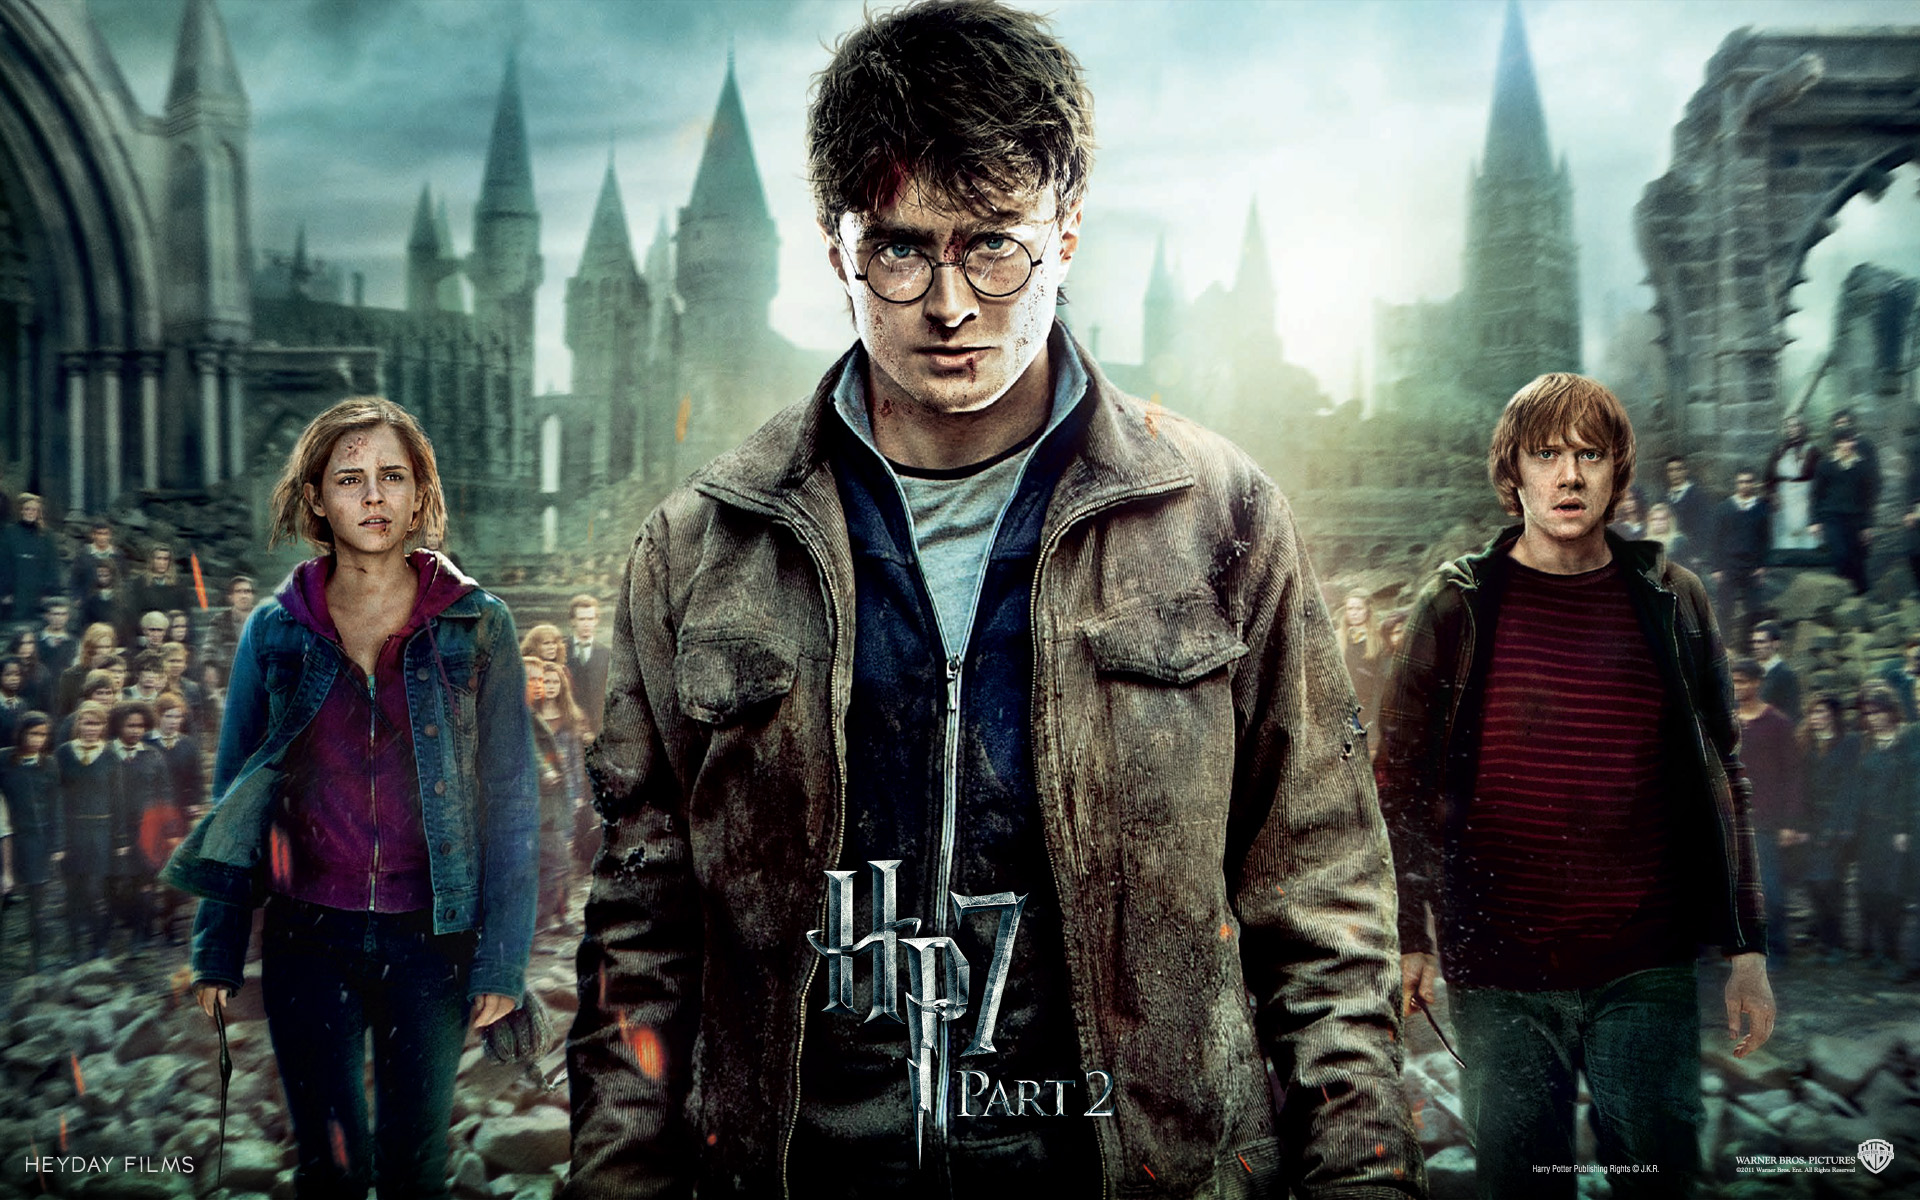 Harry Potter and The Deathly Hallows Part 2 424.93 Kb